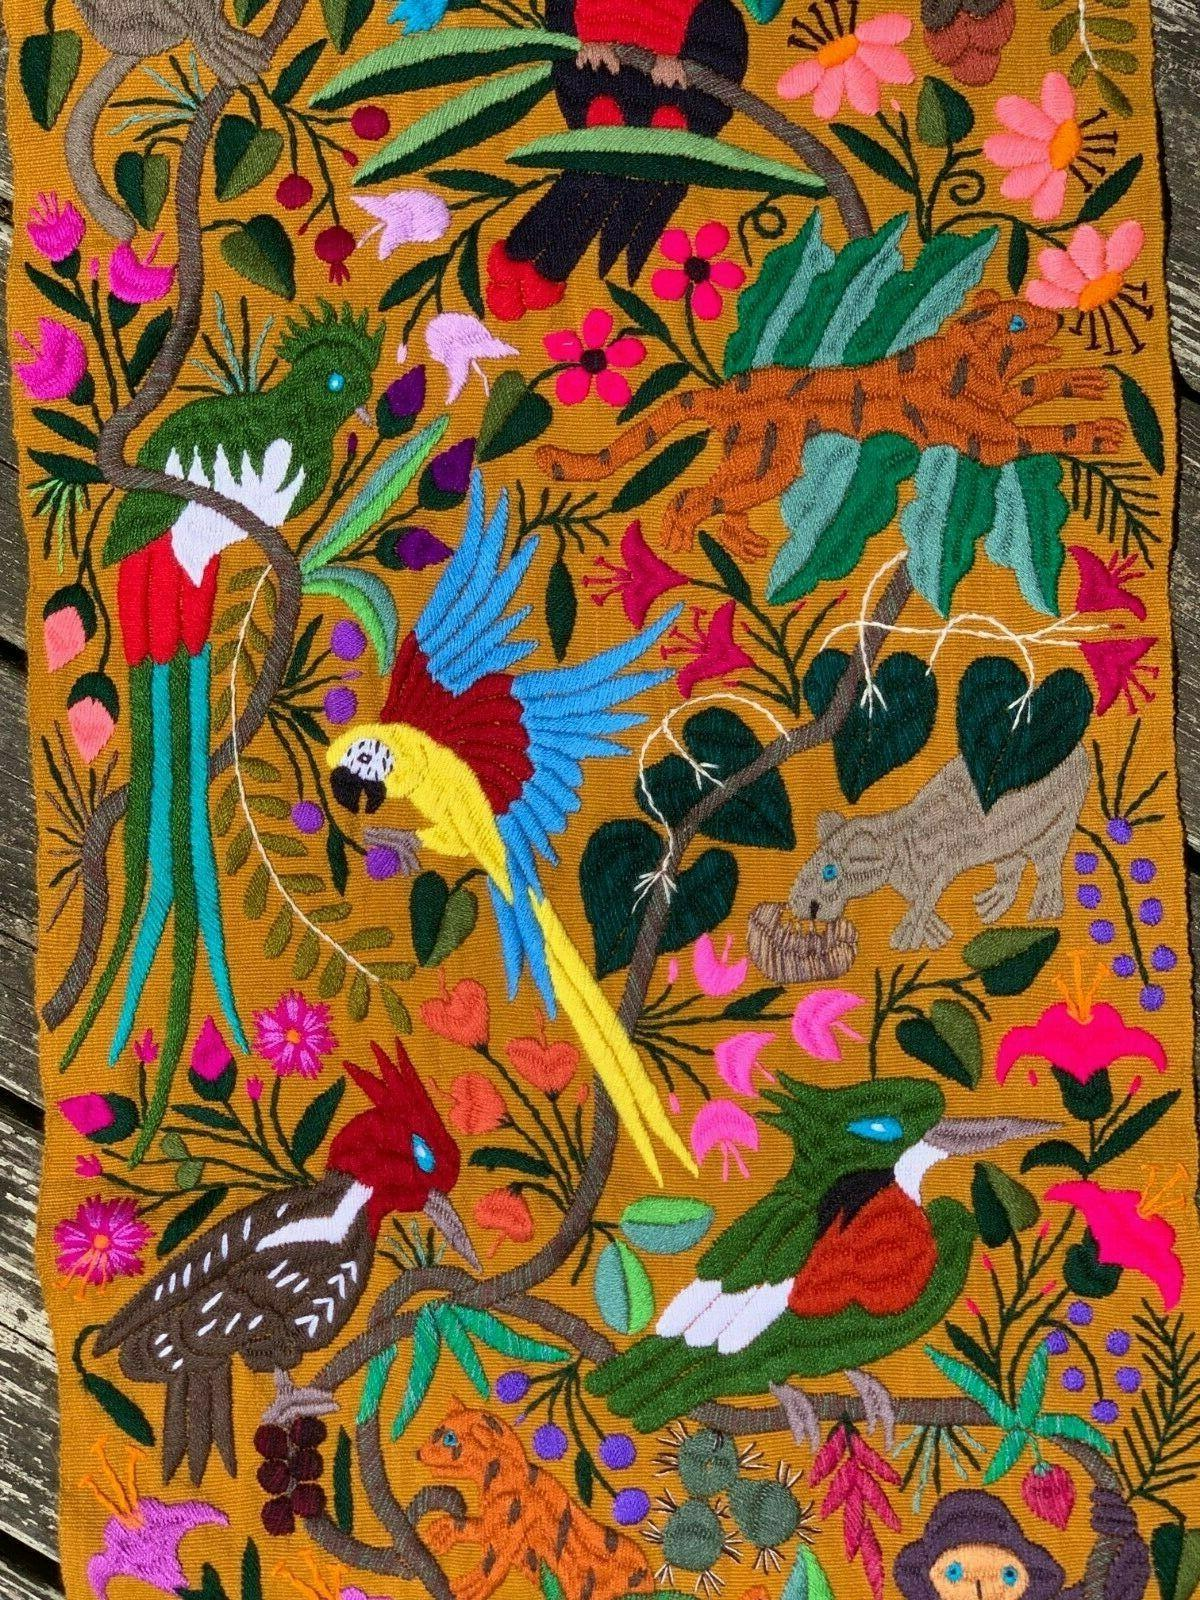 Animals Parrots Birds 60x16